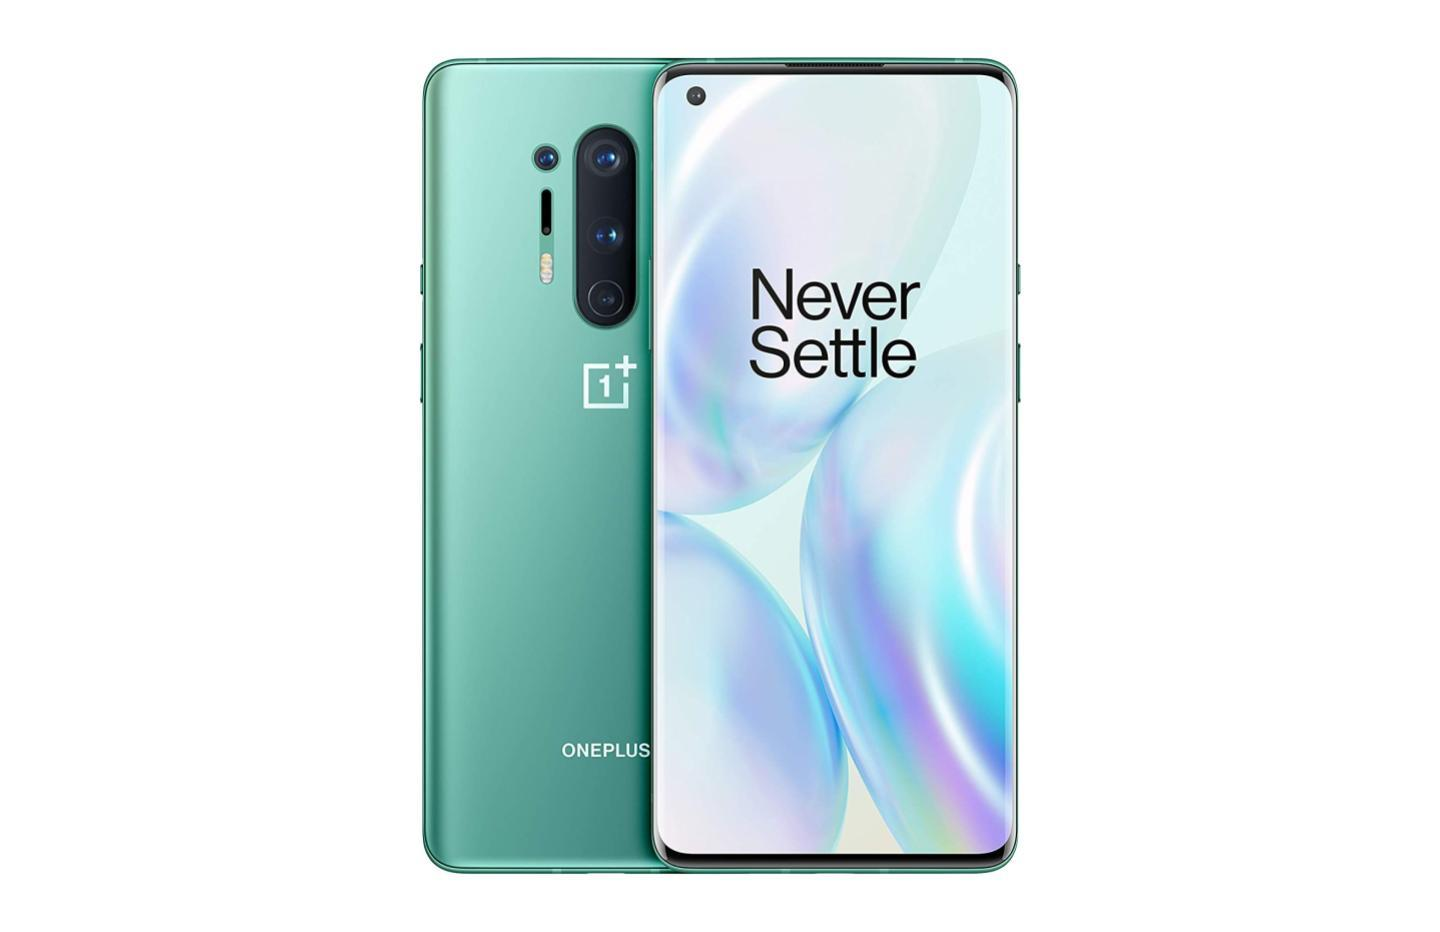 La version la plus boostée du OnePlus 8 Pro avec 250 euros de réduction